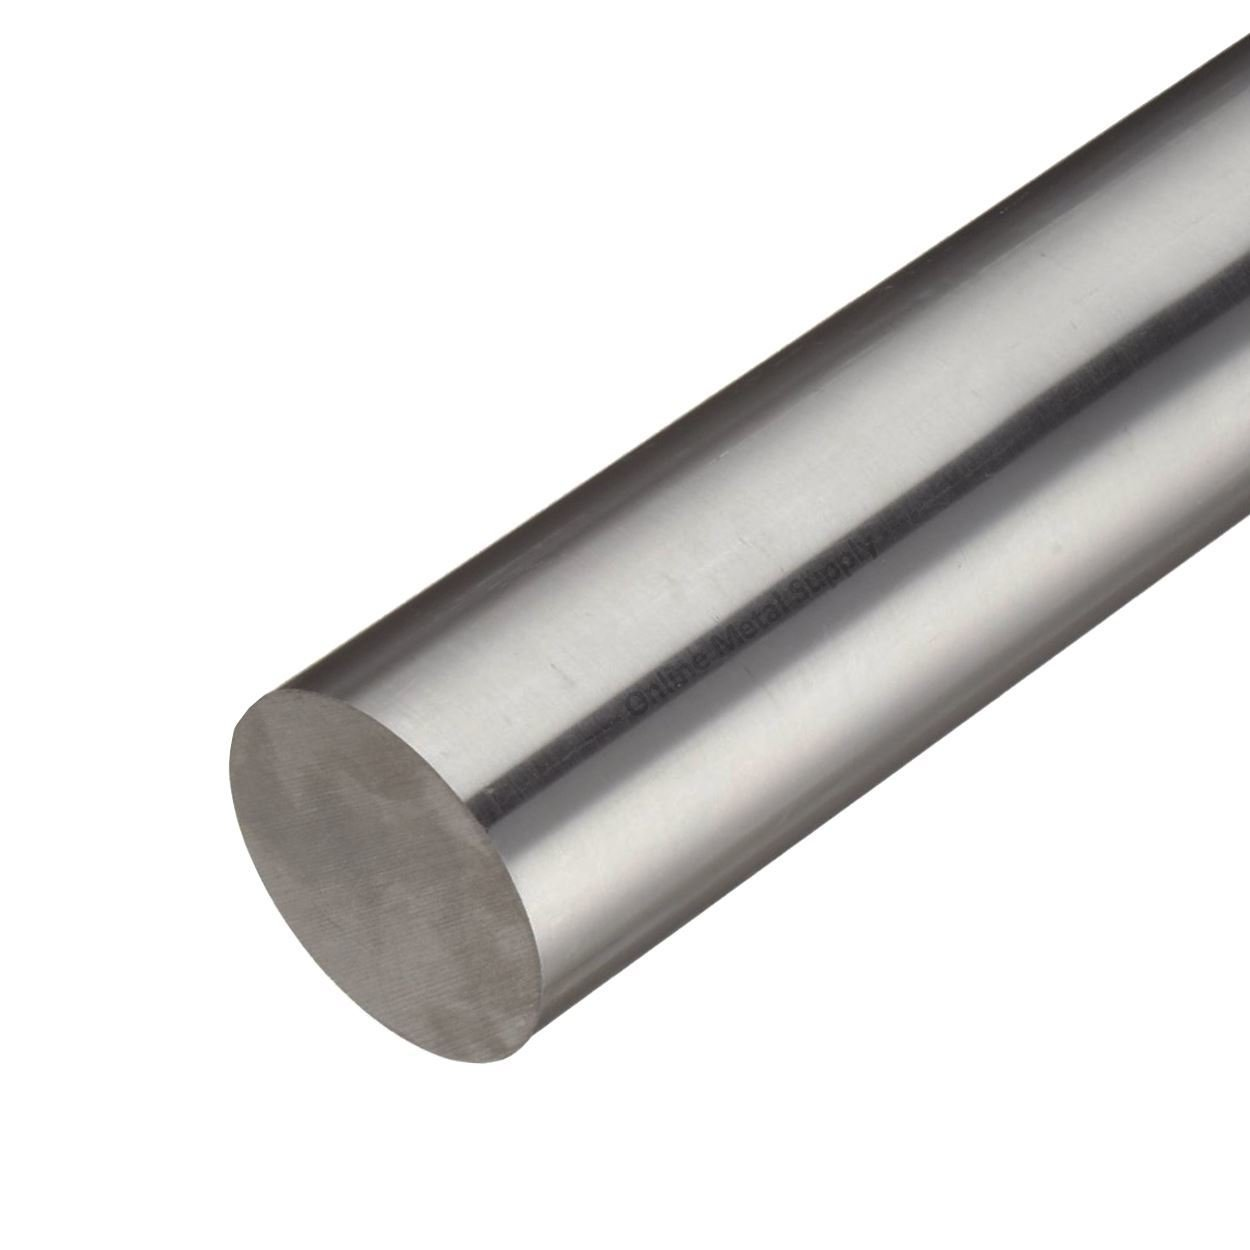 Online Metal Supply 440C Stainless Steel Round Rod, 0.500 (1/2 inch) x 72 inches (2 Pack) by Online Metal Supply